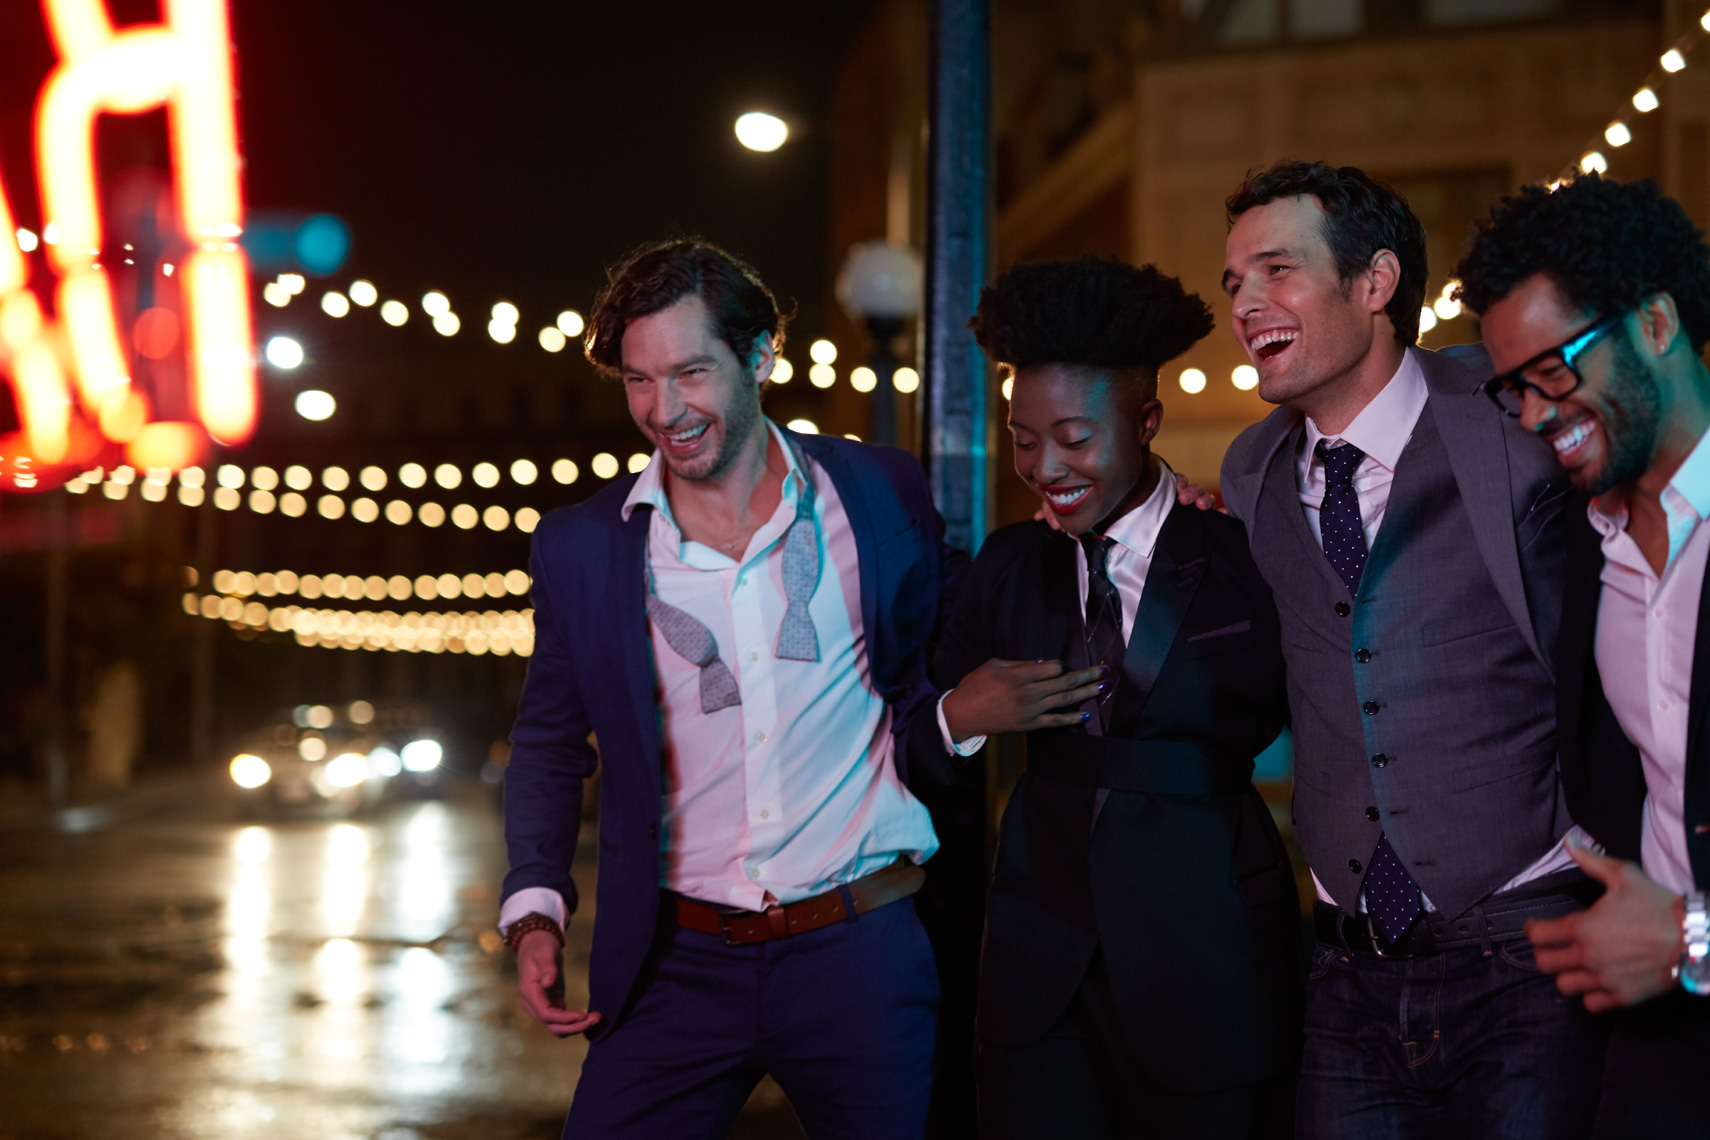 Four men and woman dressed formal  out on the town at night laughing and celebrating while walking past lights